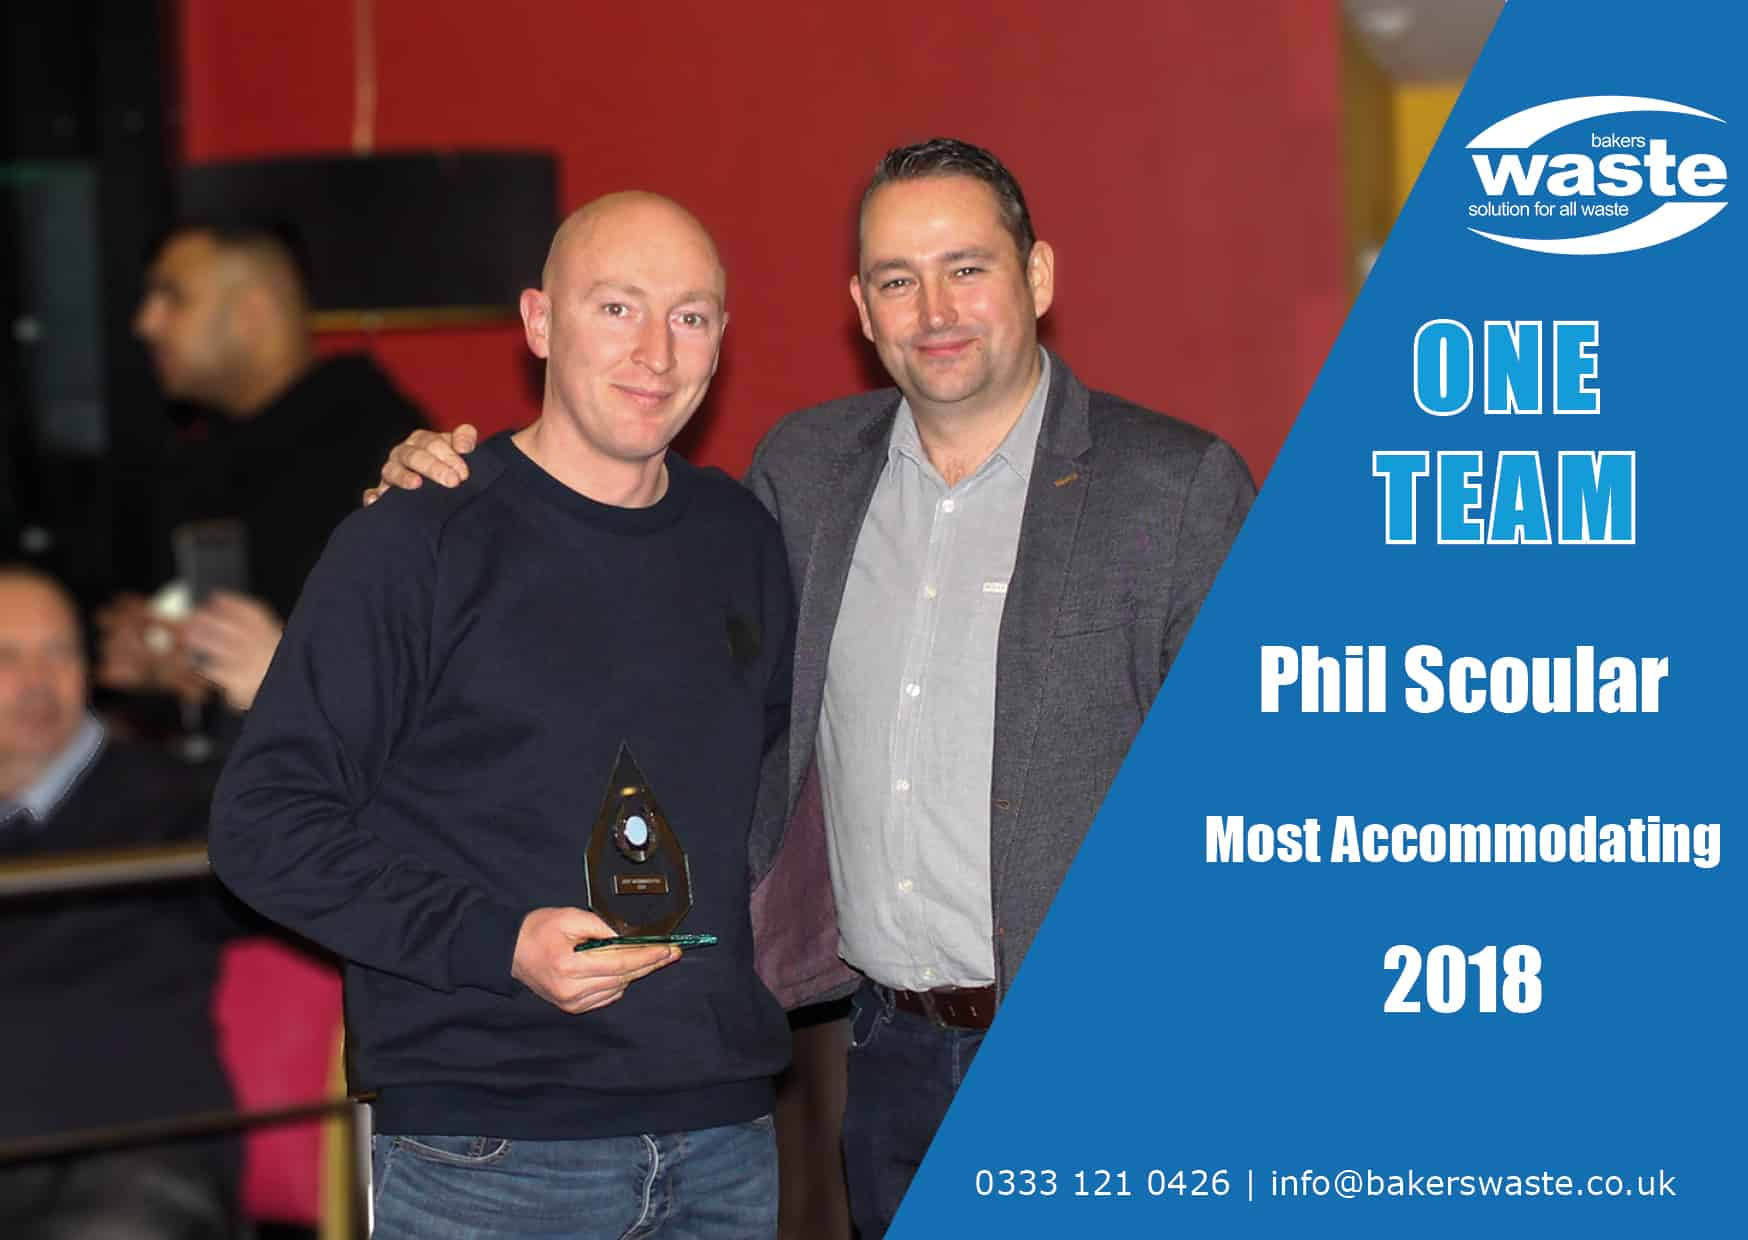 phil scoular- most accommodating